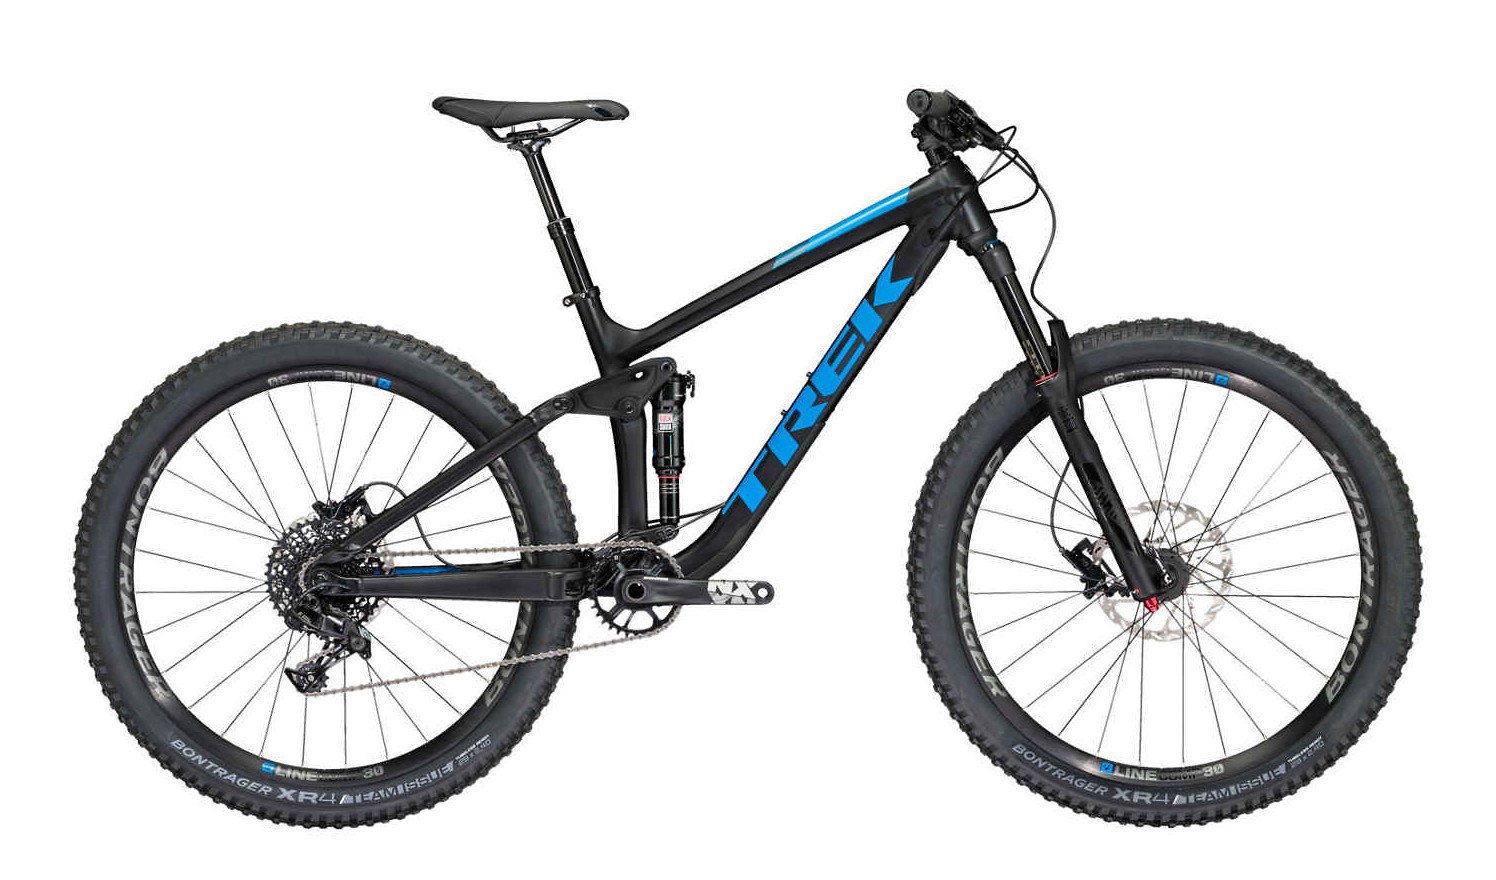 52ab5363393e4 2018 Trek Remedy 7 27.5 Bike - Reviews